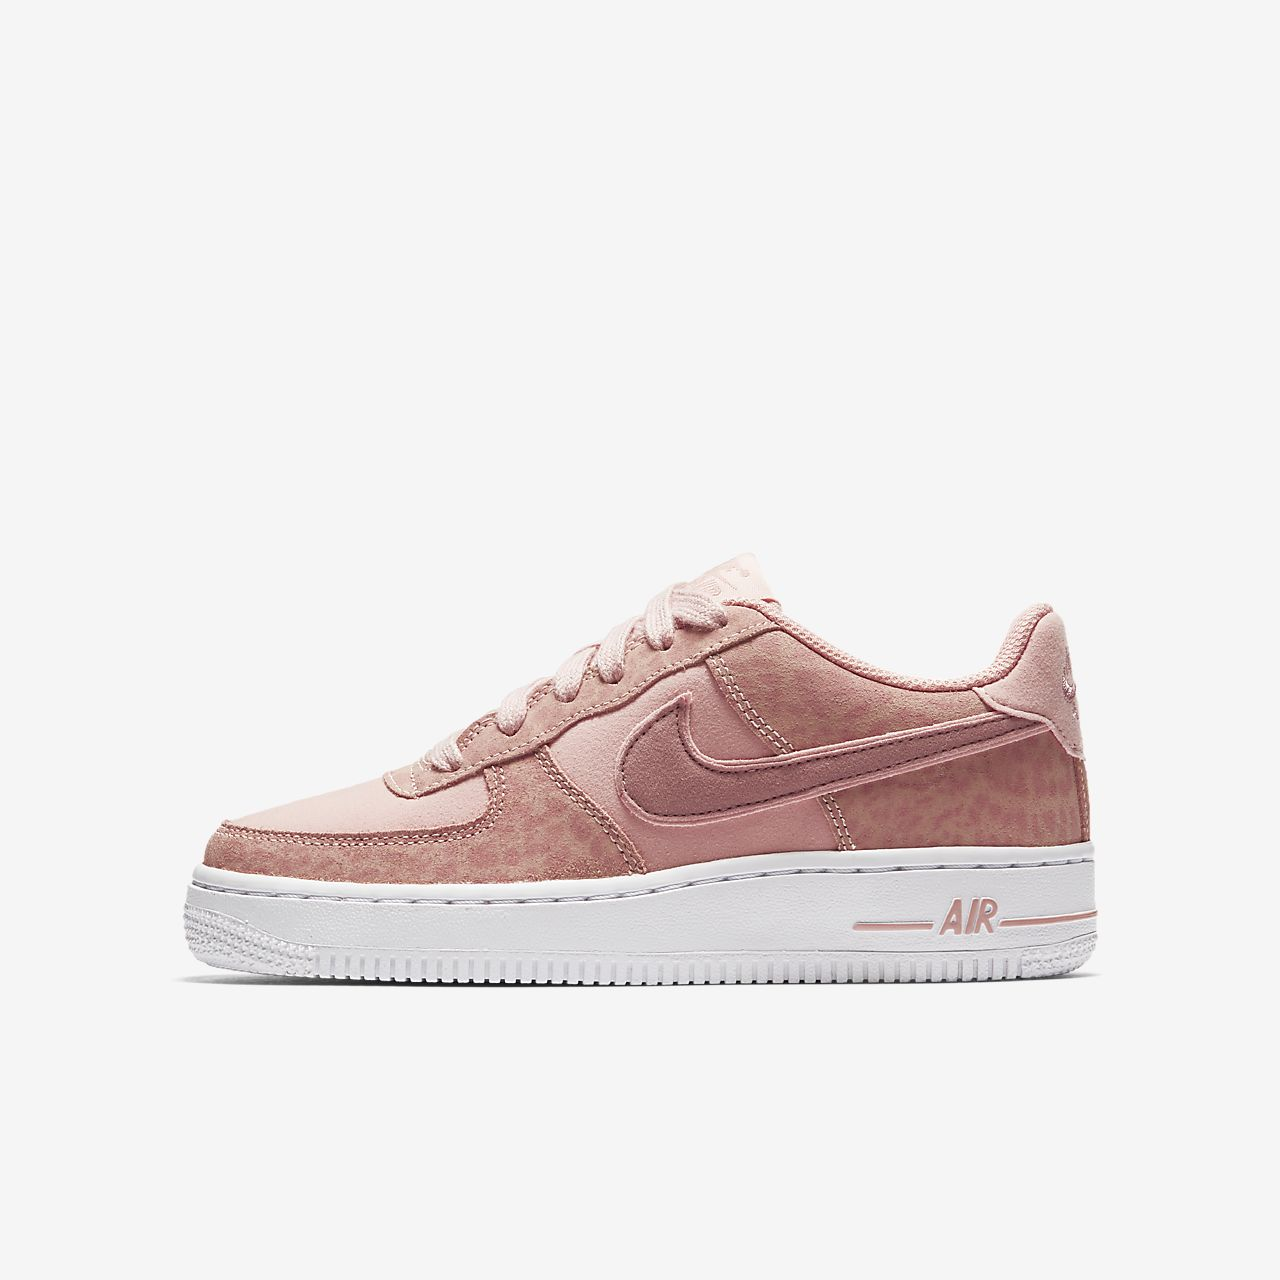 Acquista 2 OFF QUALSIASI nike air force 1 marroni CASE E